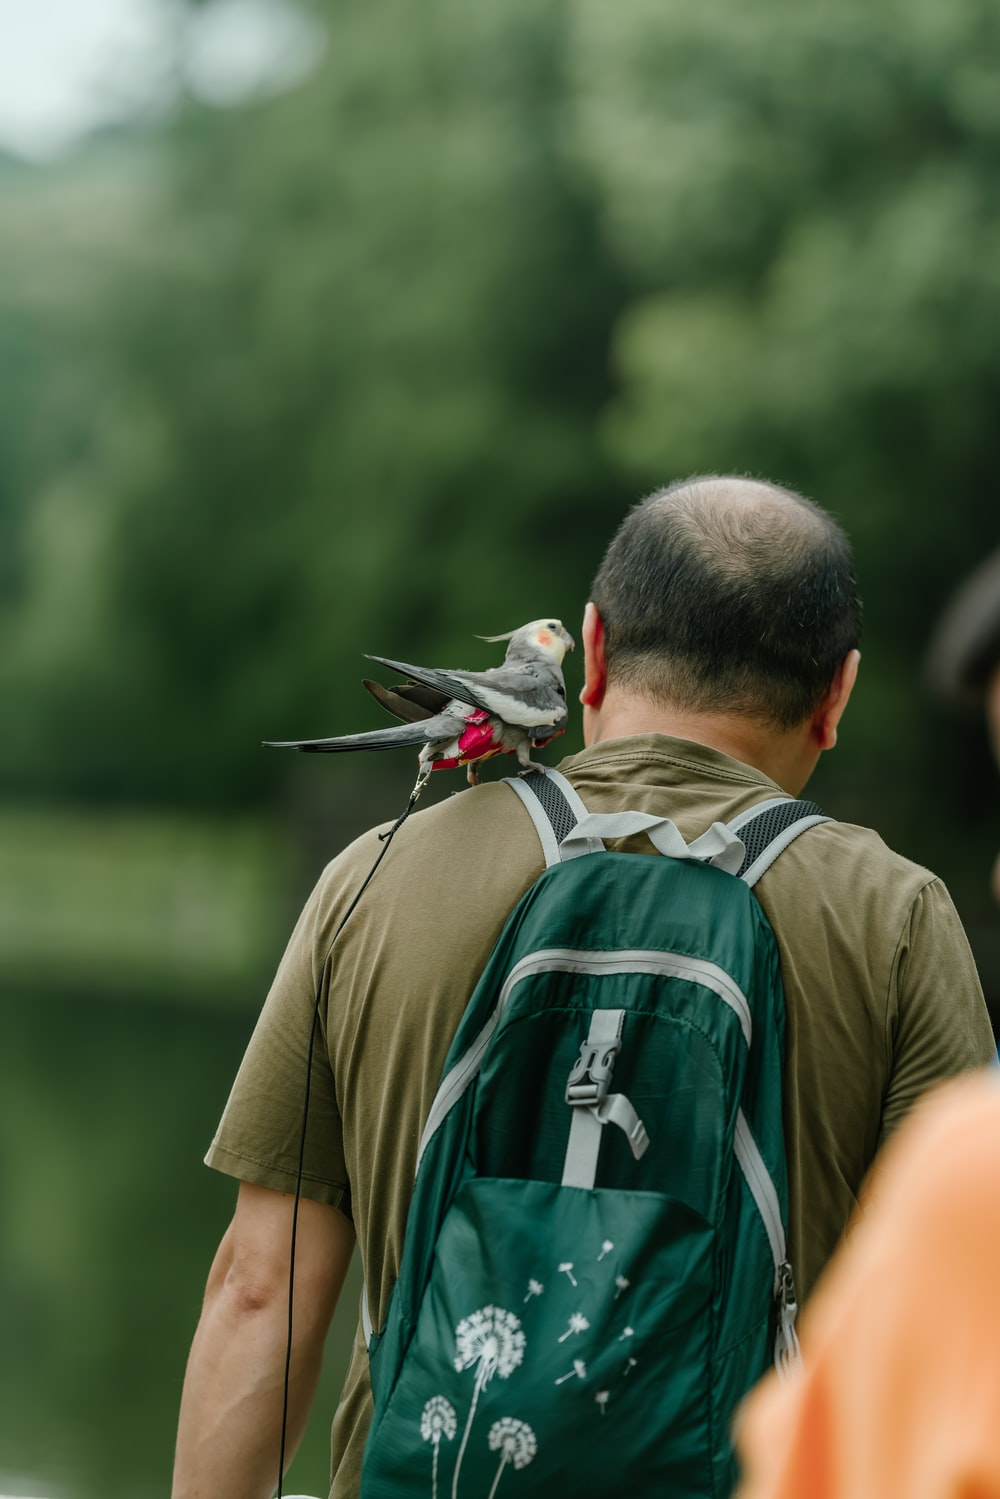 man wearing green backpack with gray bird on shoulder